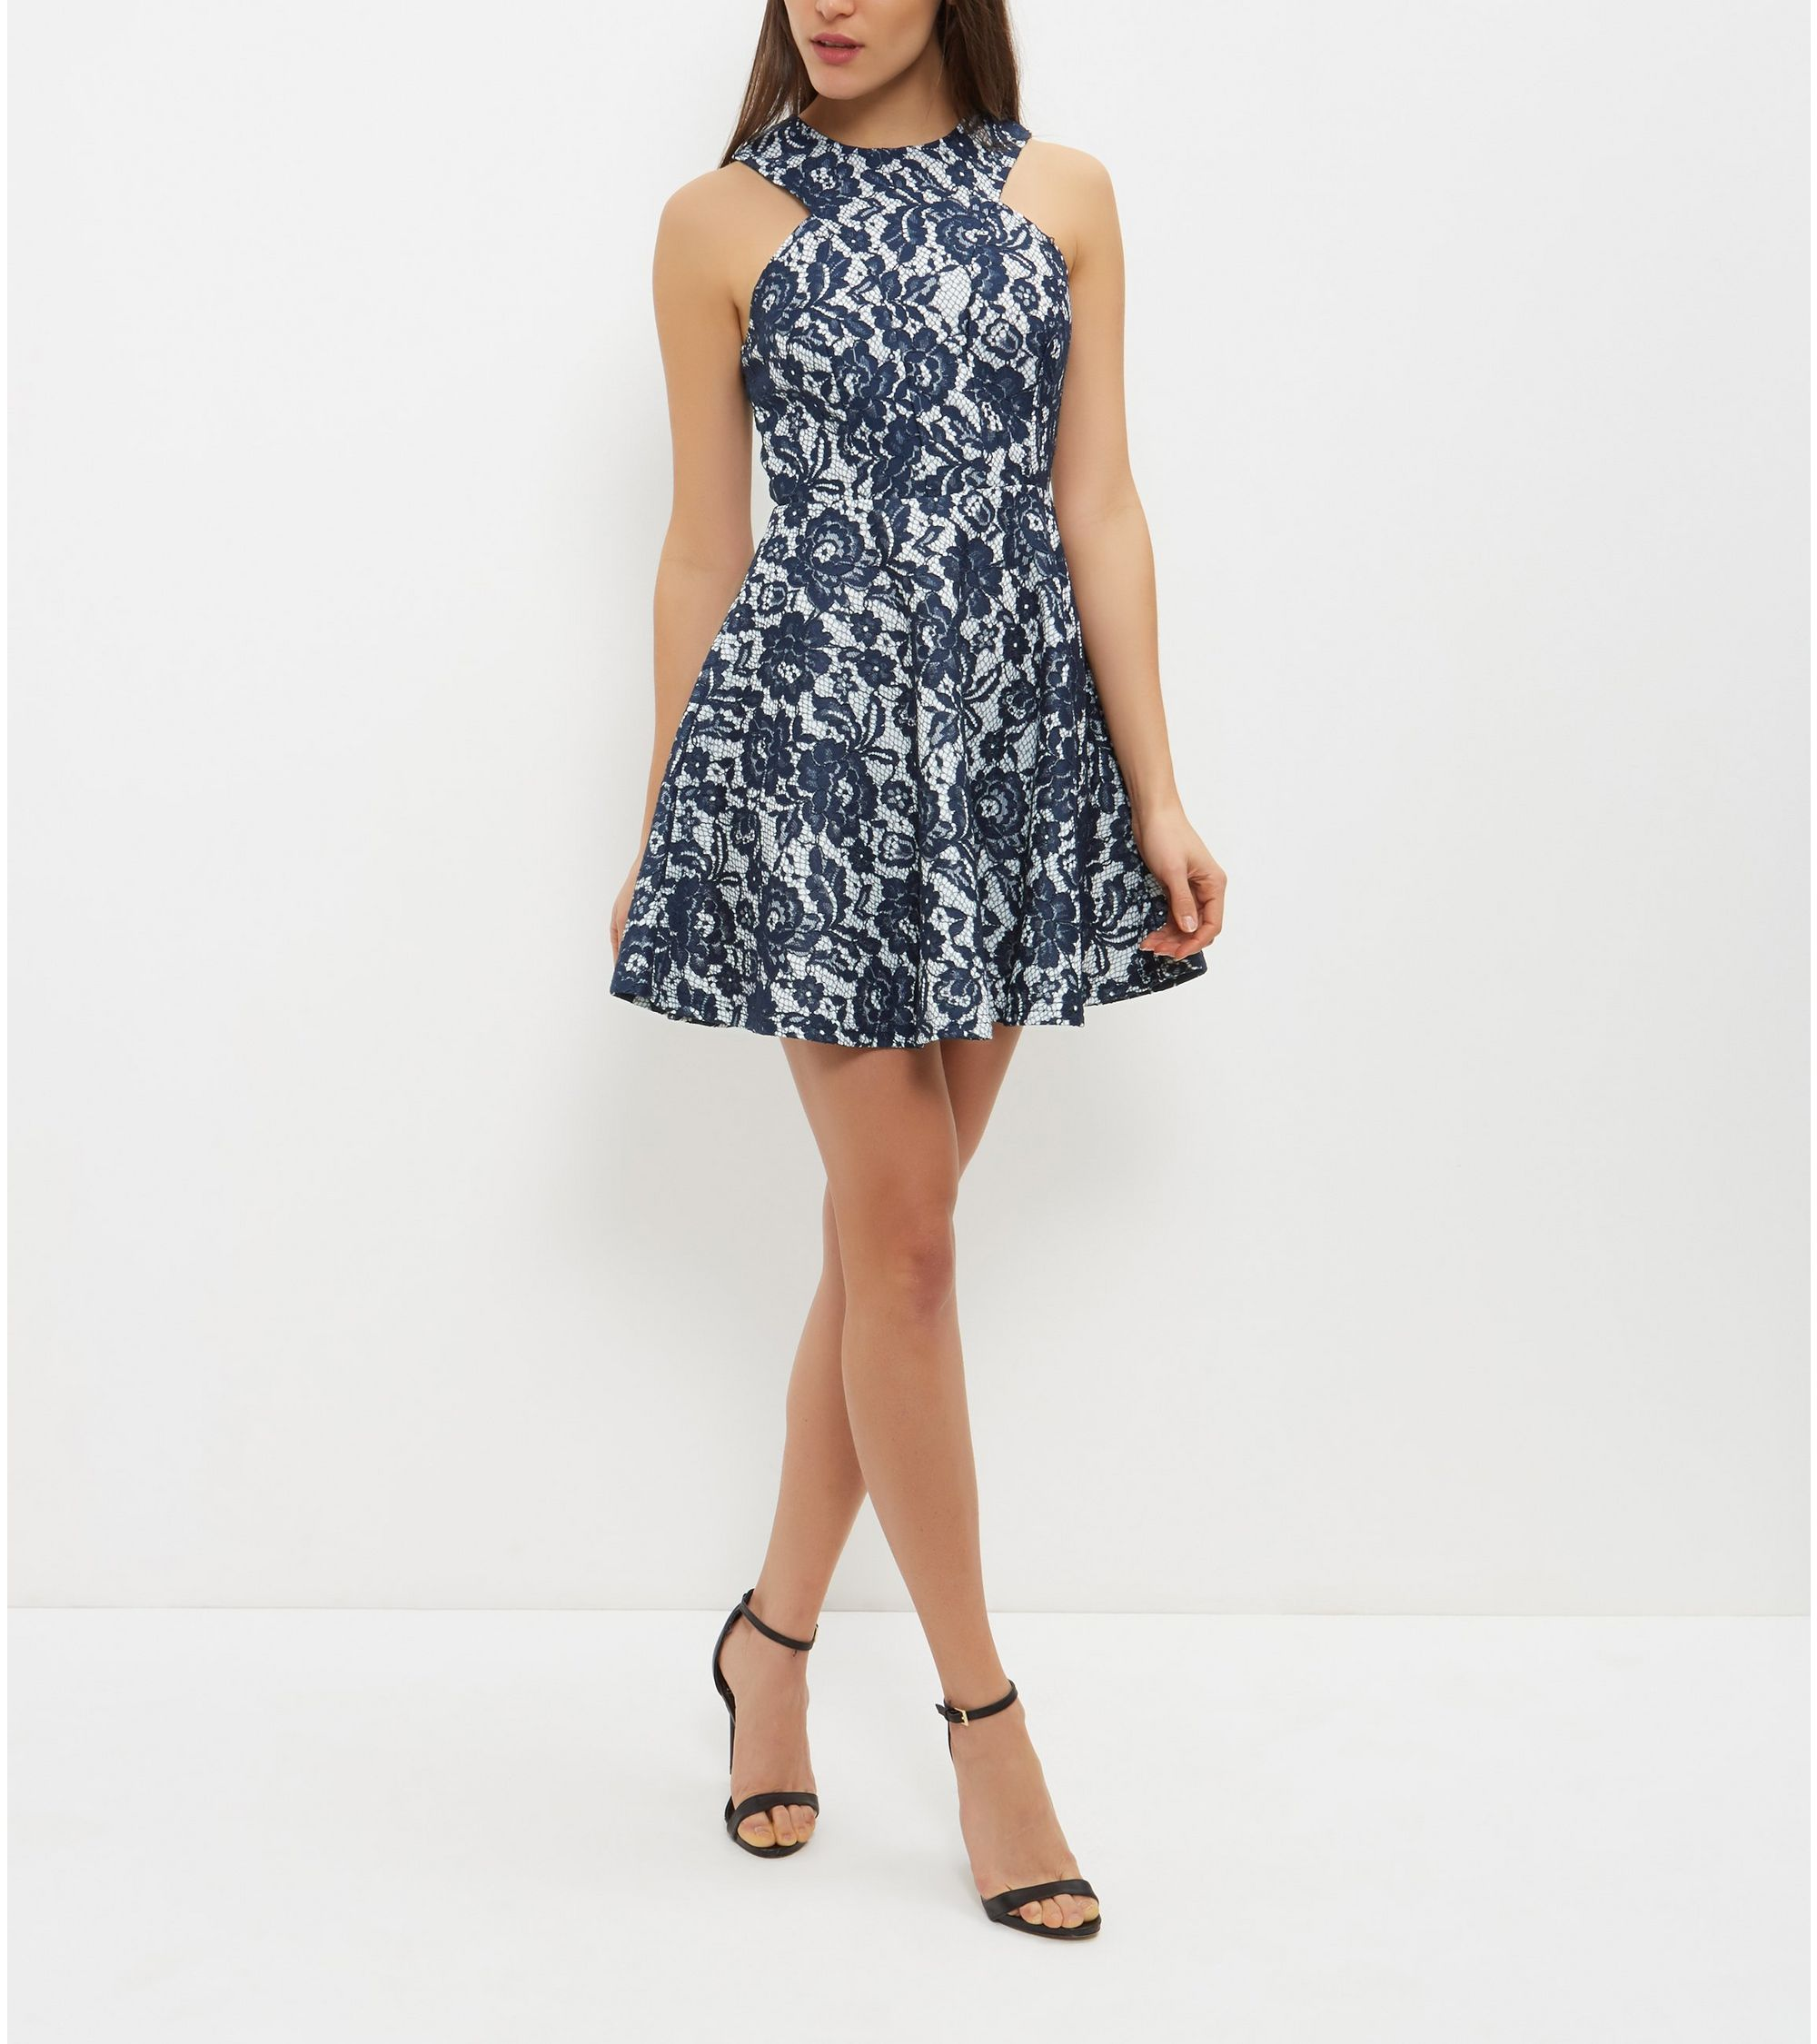 5ef518d3a7 New Look AX Paris Navy Floral Print Lace Skater Dress at £45